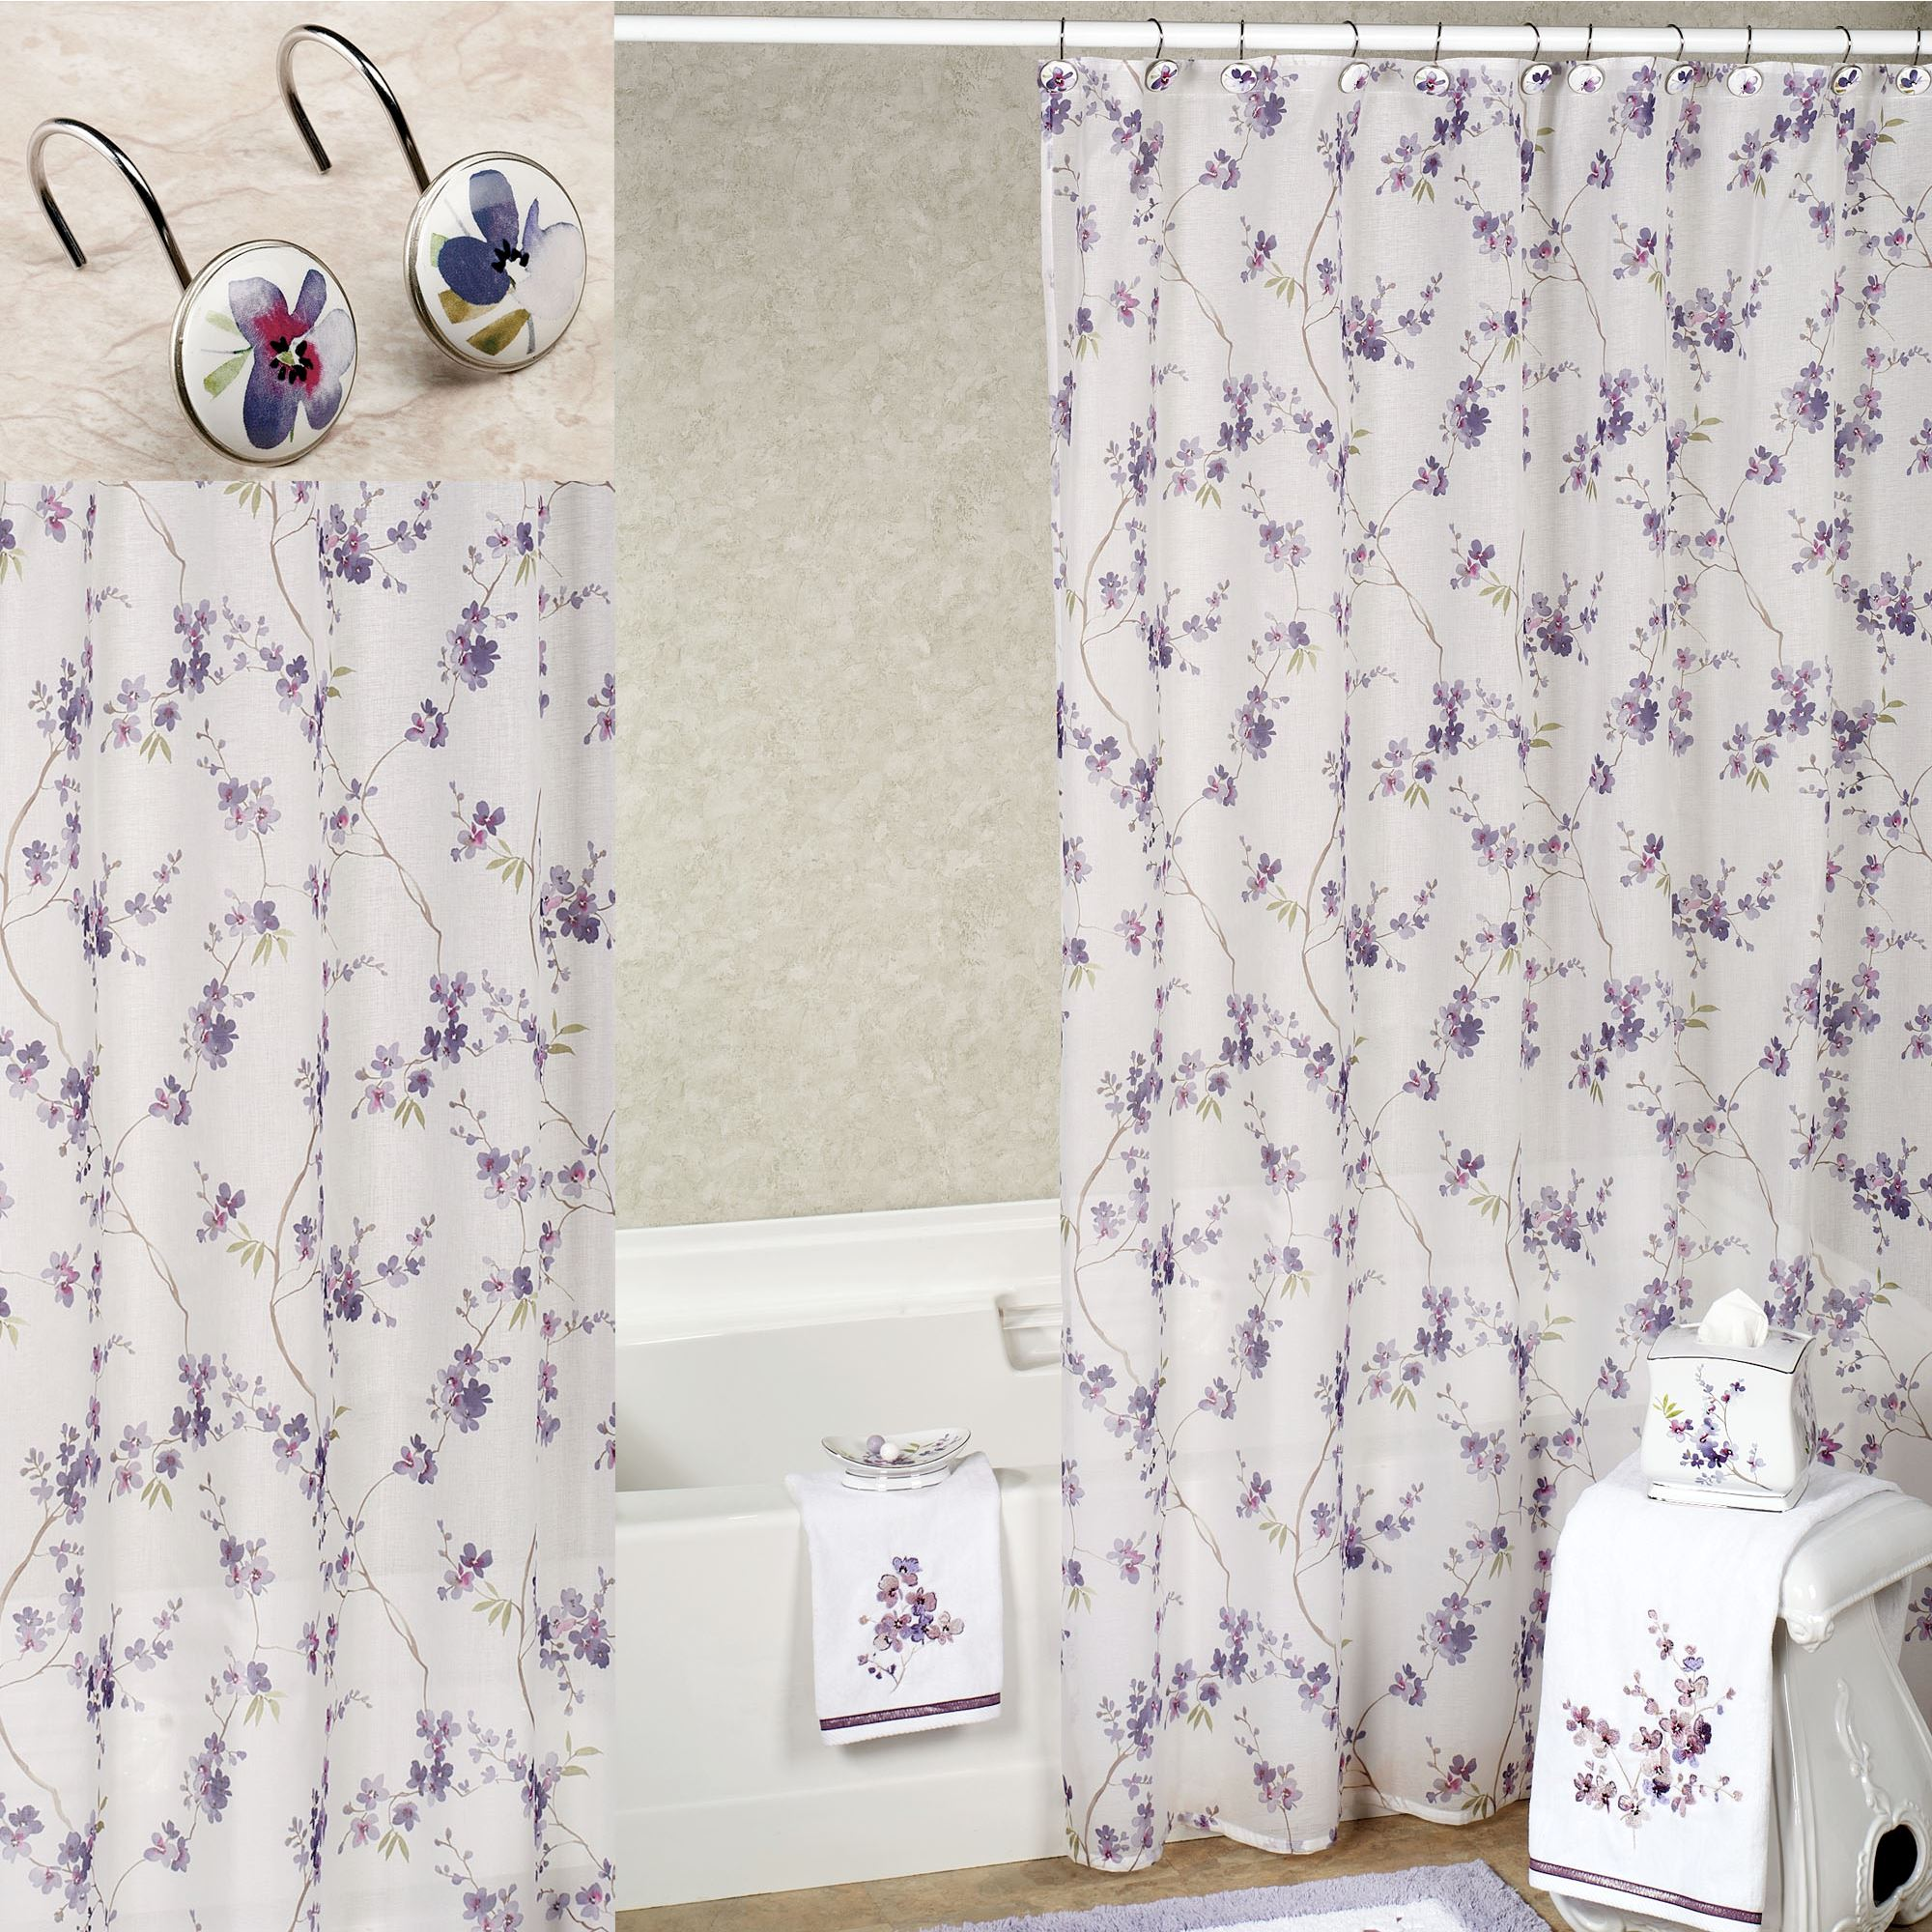 Coral Shower Curtain Hooks Floral Indian Curtains Beautiful Bathroom Decor Ideas With